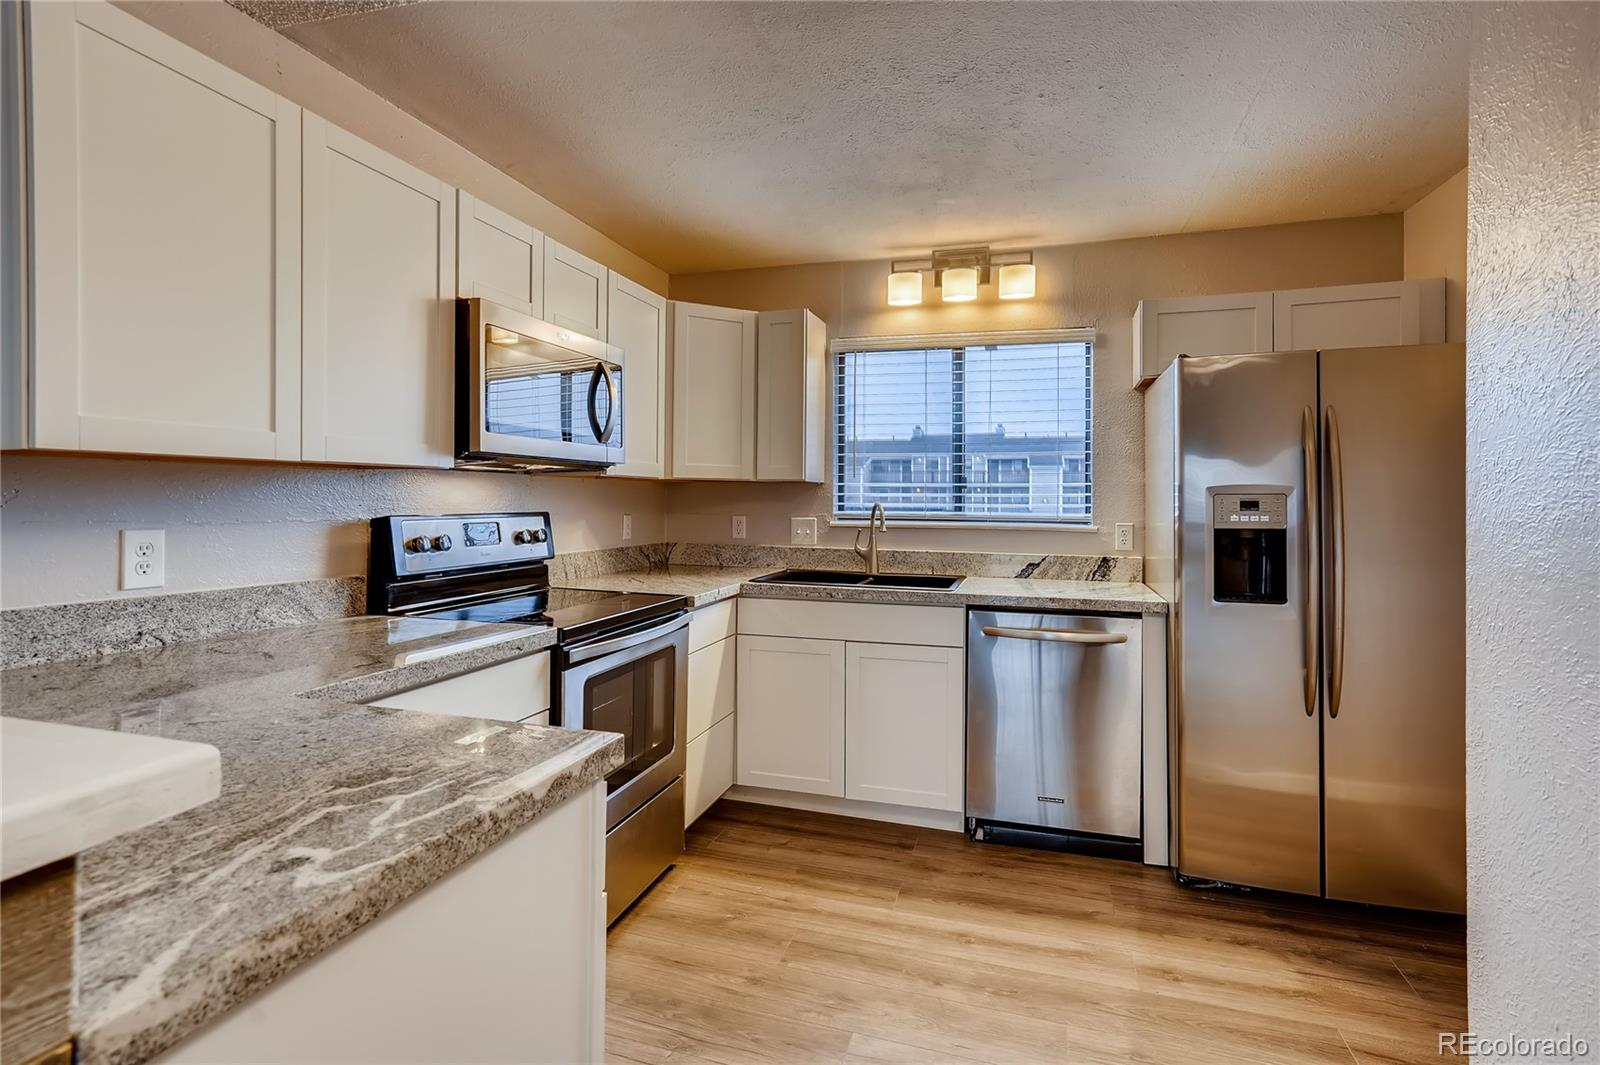 MLS# 7127267 - 2 - 2750 W 86th Avenue #168, Westminster, CO 80031